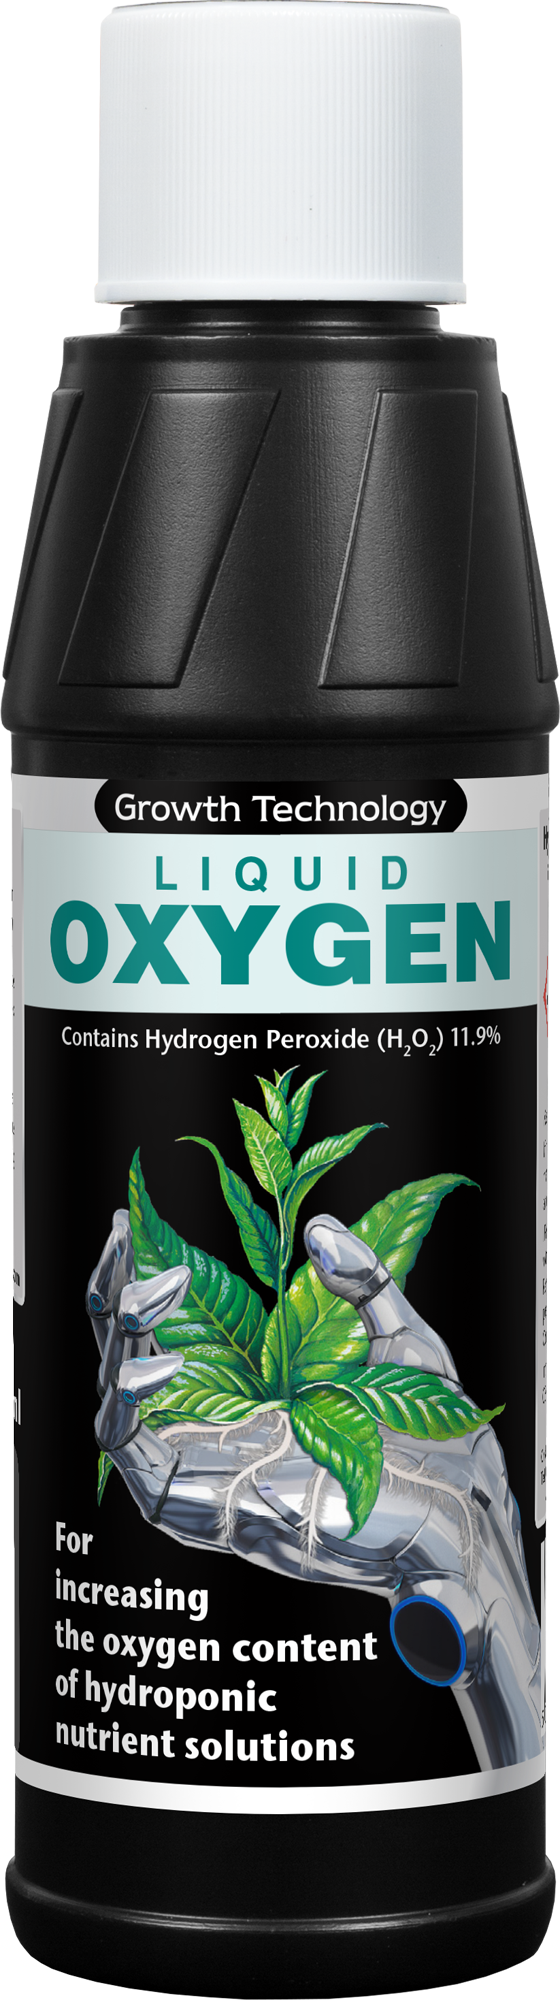 Growth Technology - Liquid Oxygen - NPK Technology Hydroponics